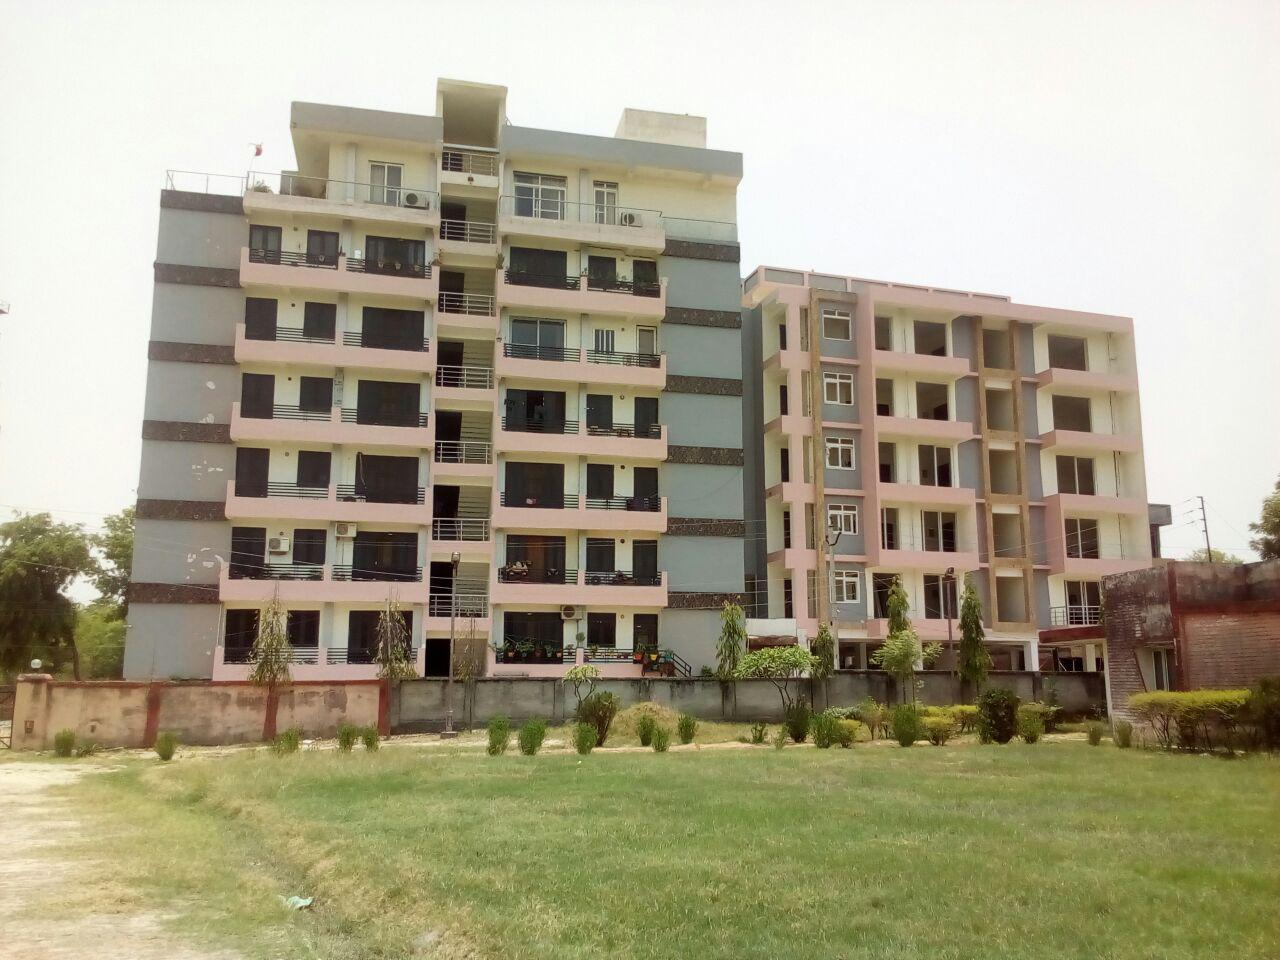 SHRI SAI REALINFRA PRIVATE LIMITED LUCKNOW